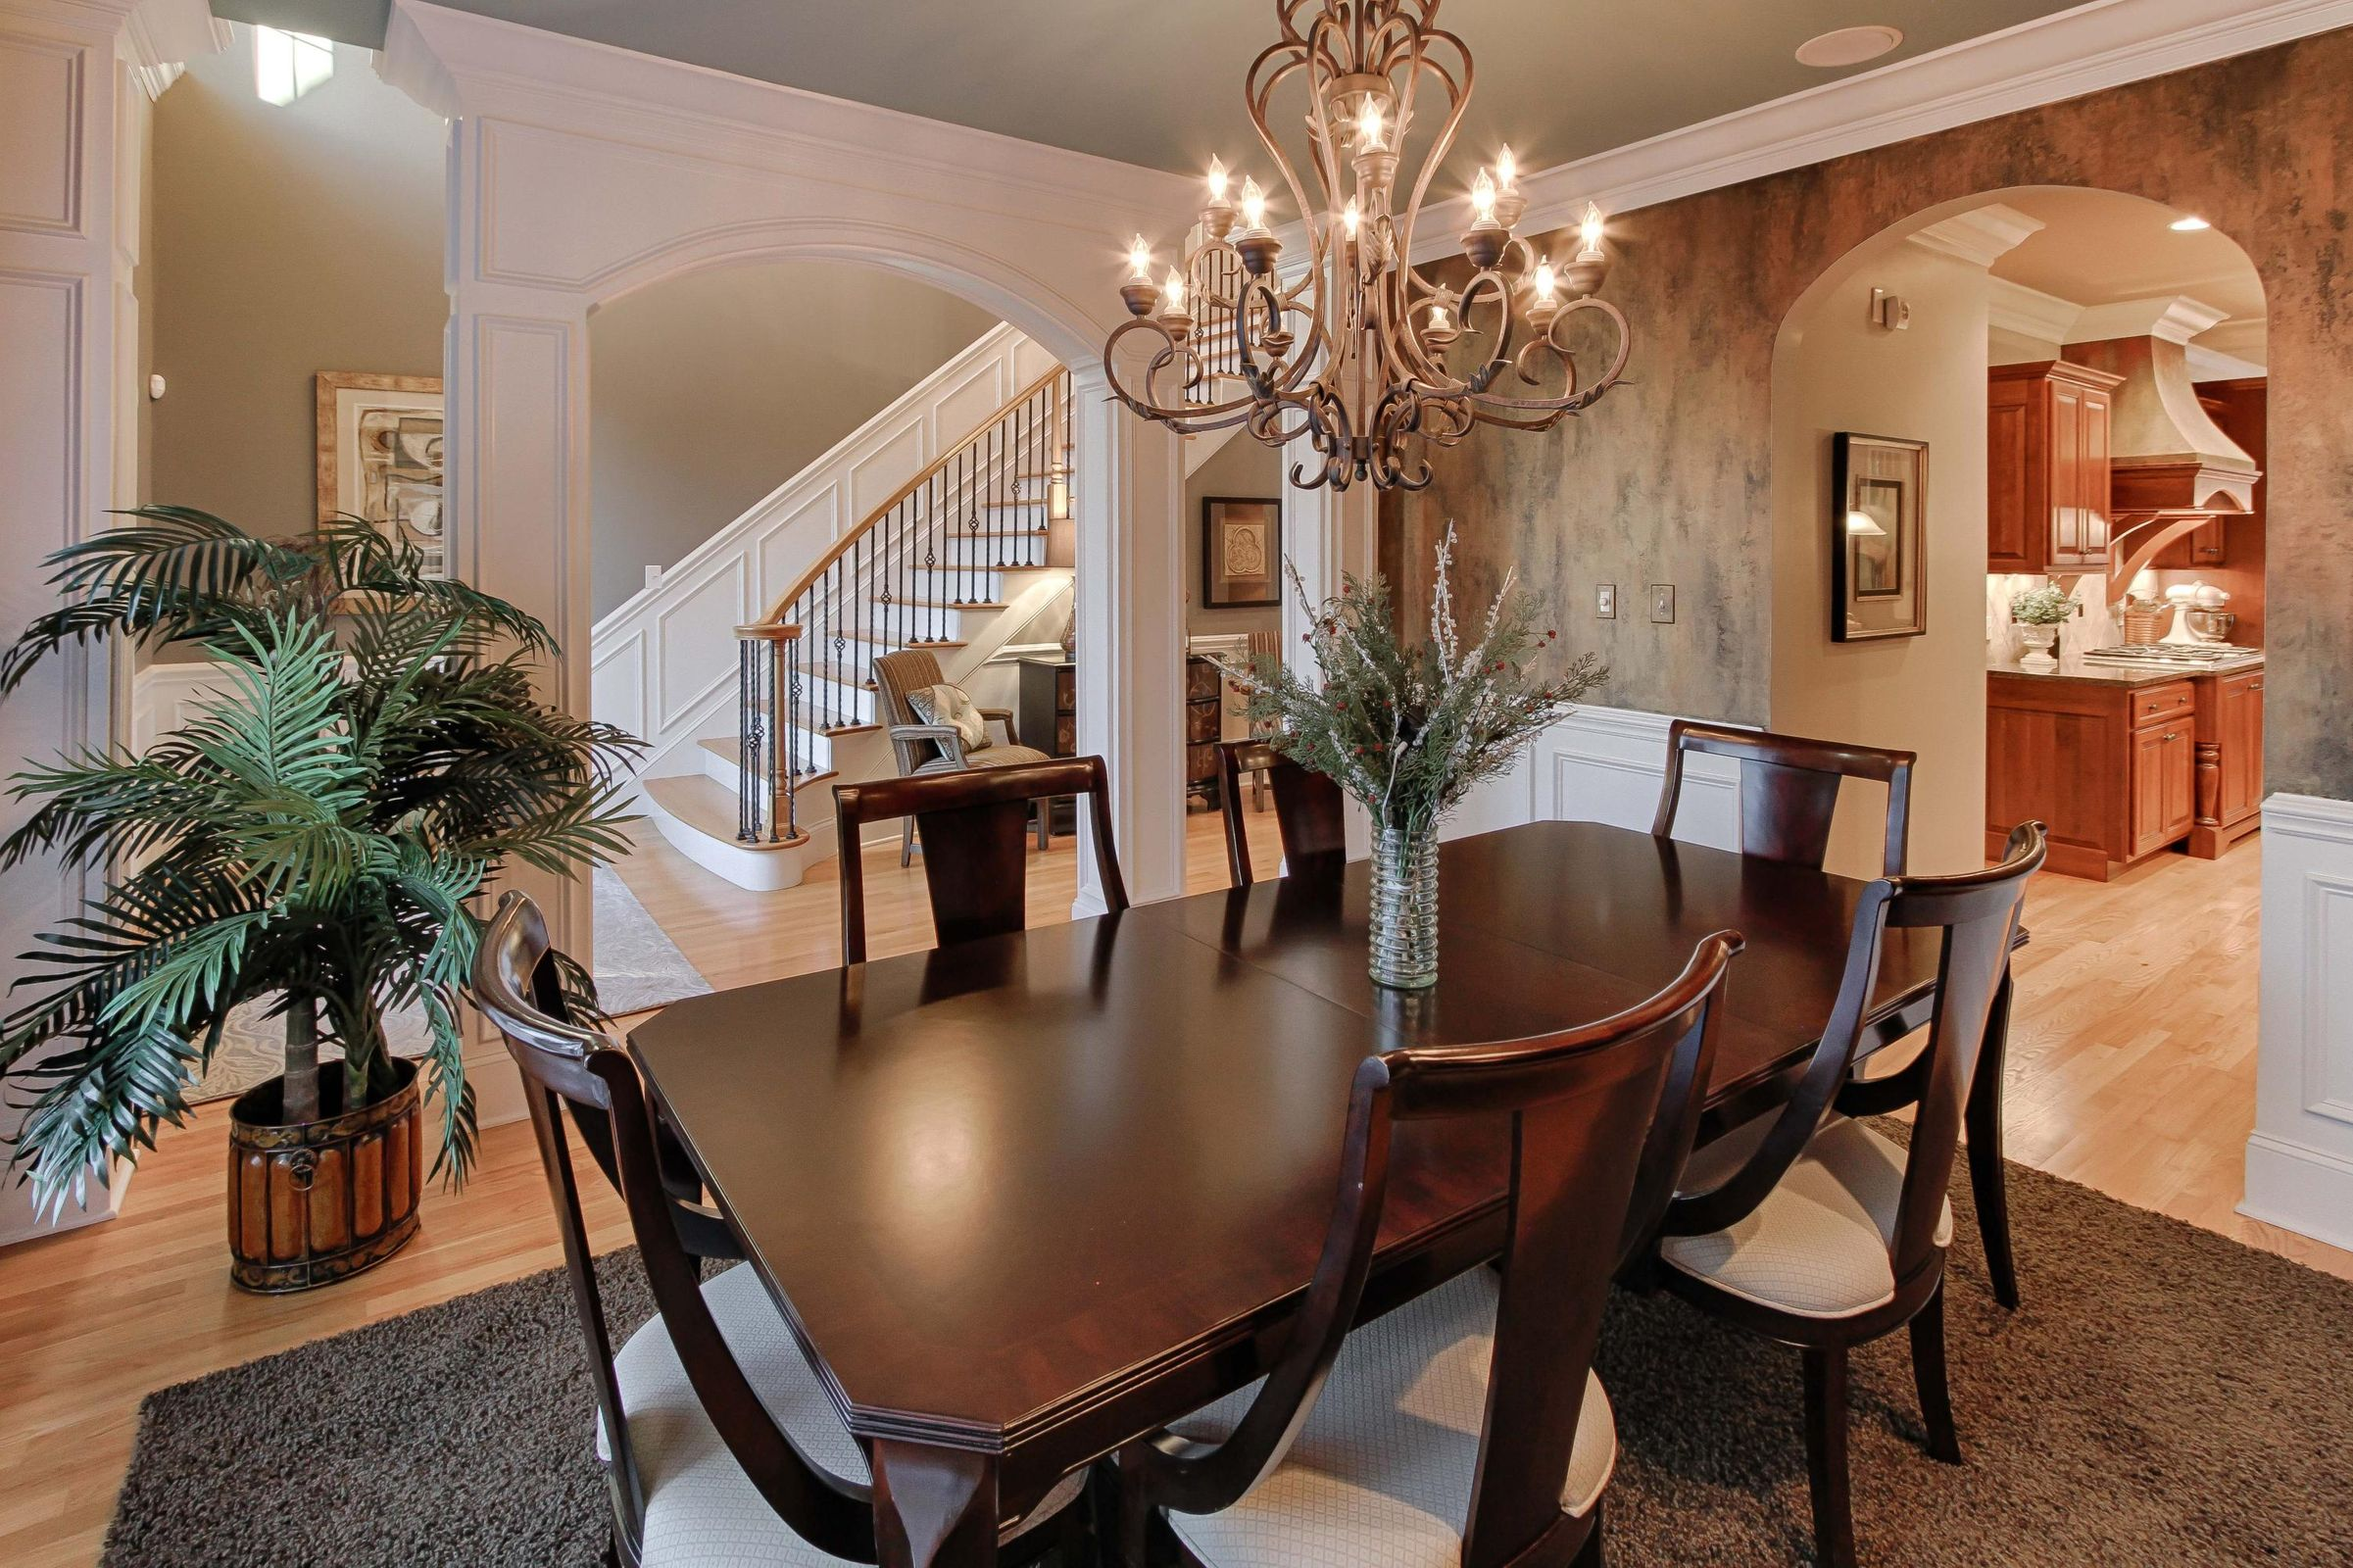 06 - Formal Dining Room